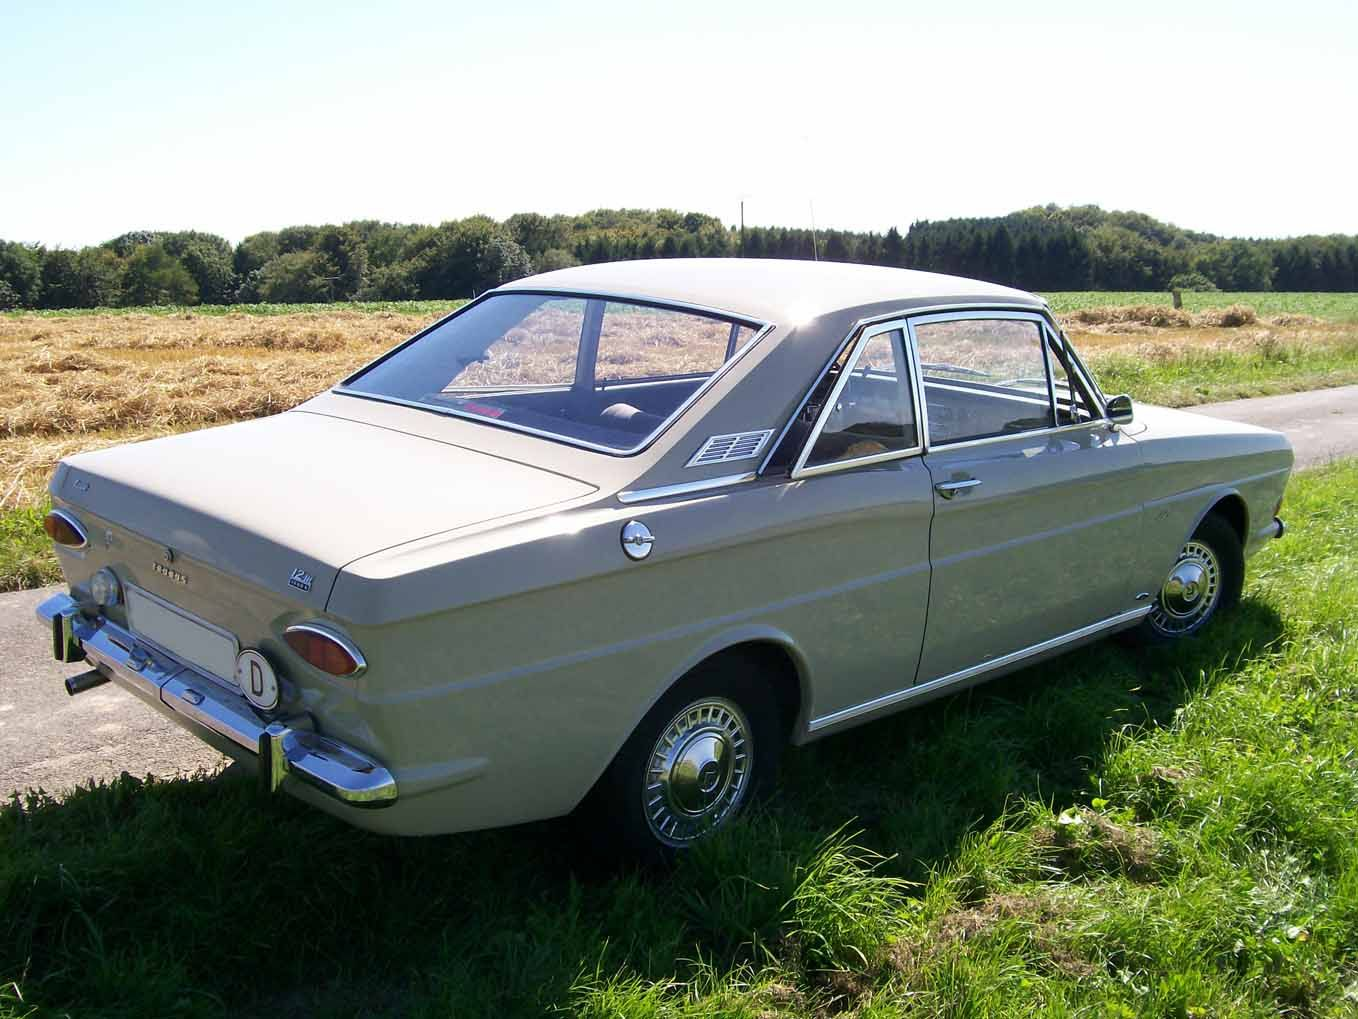 1966 ford taunus 12 m coupe p6 ford taunus pinterest ford cars and dream cars. Black Bedroom Furniture Sets. Home Design Ideas